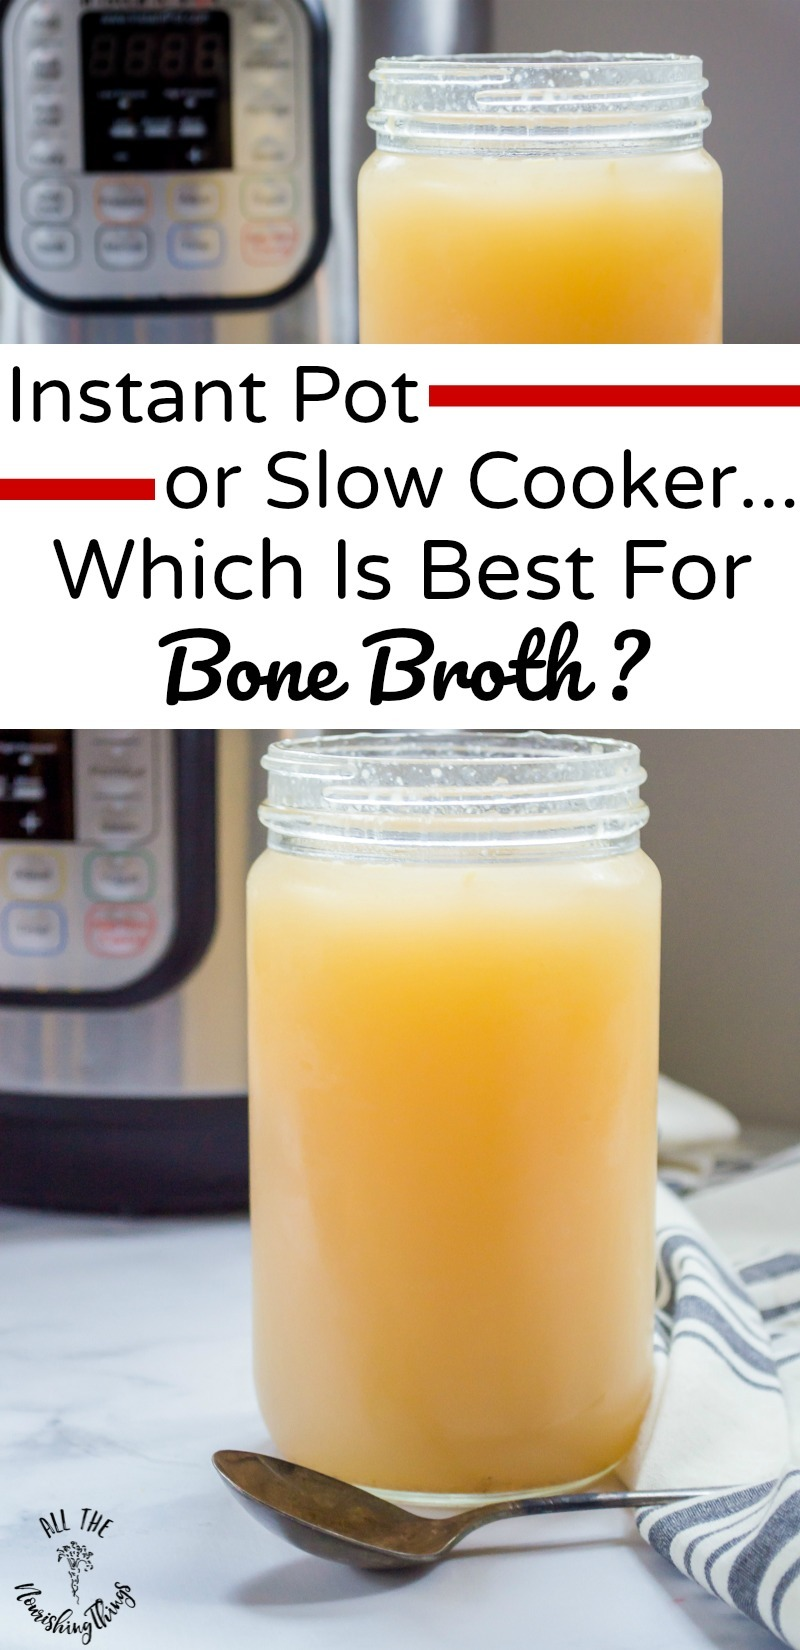 jar of instant pot bone broth with text overlay